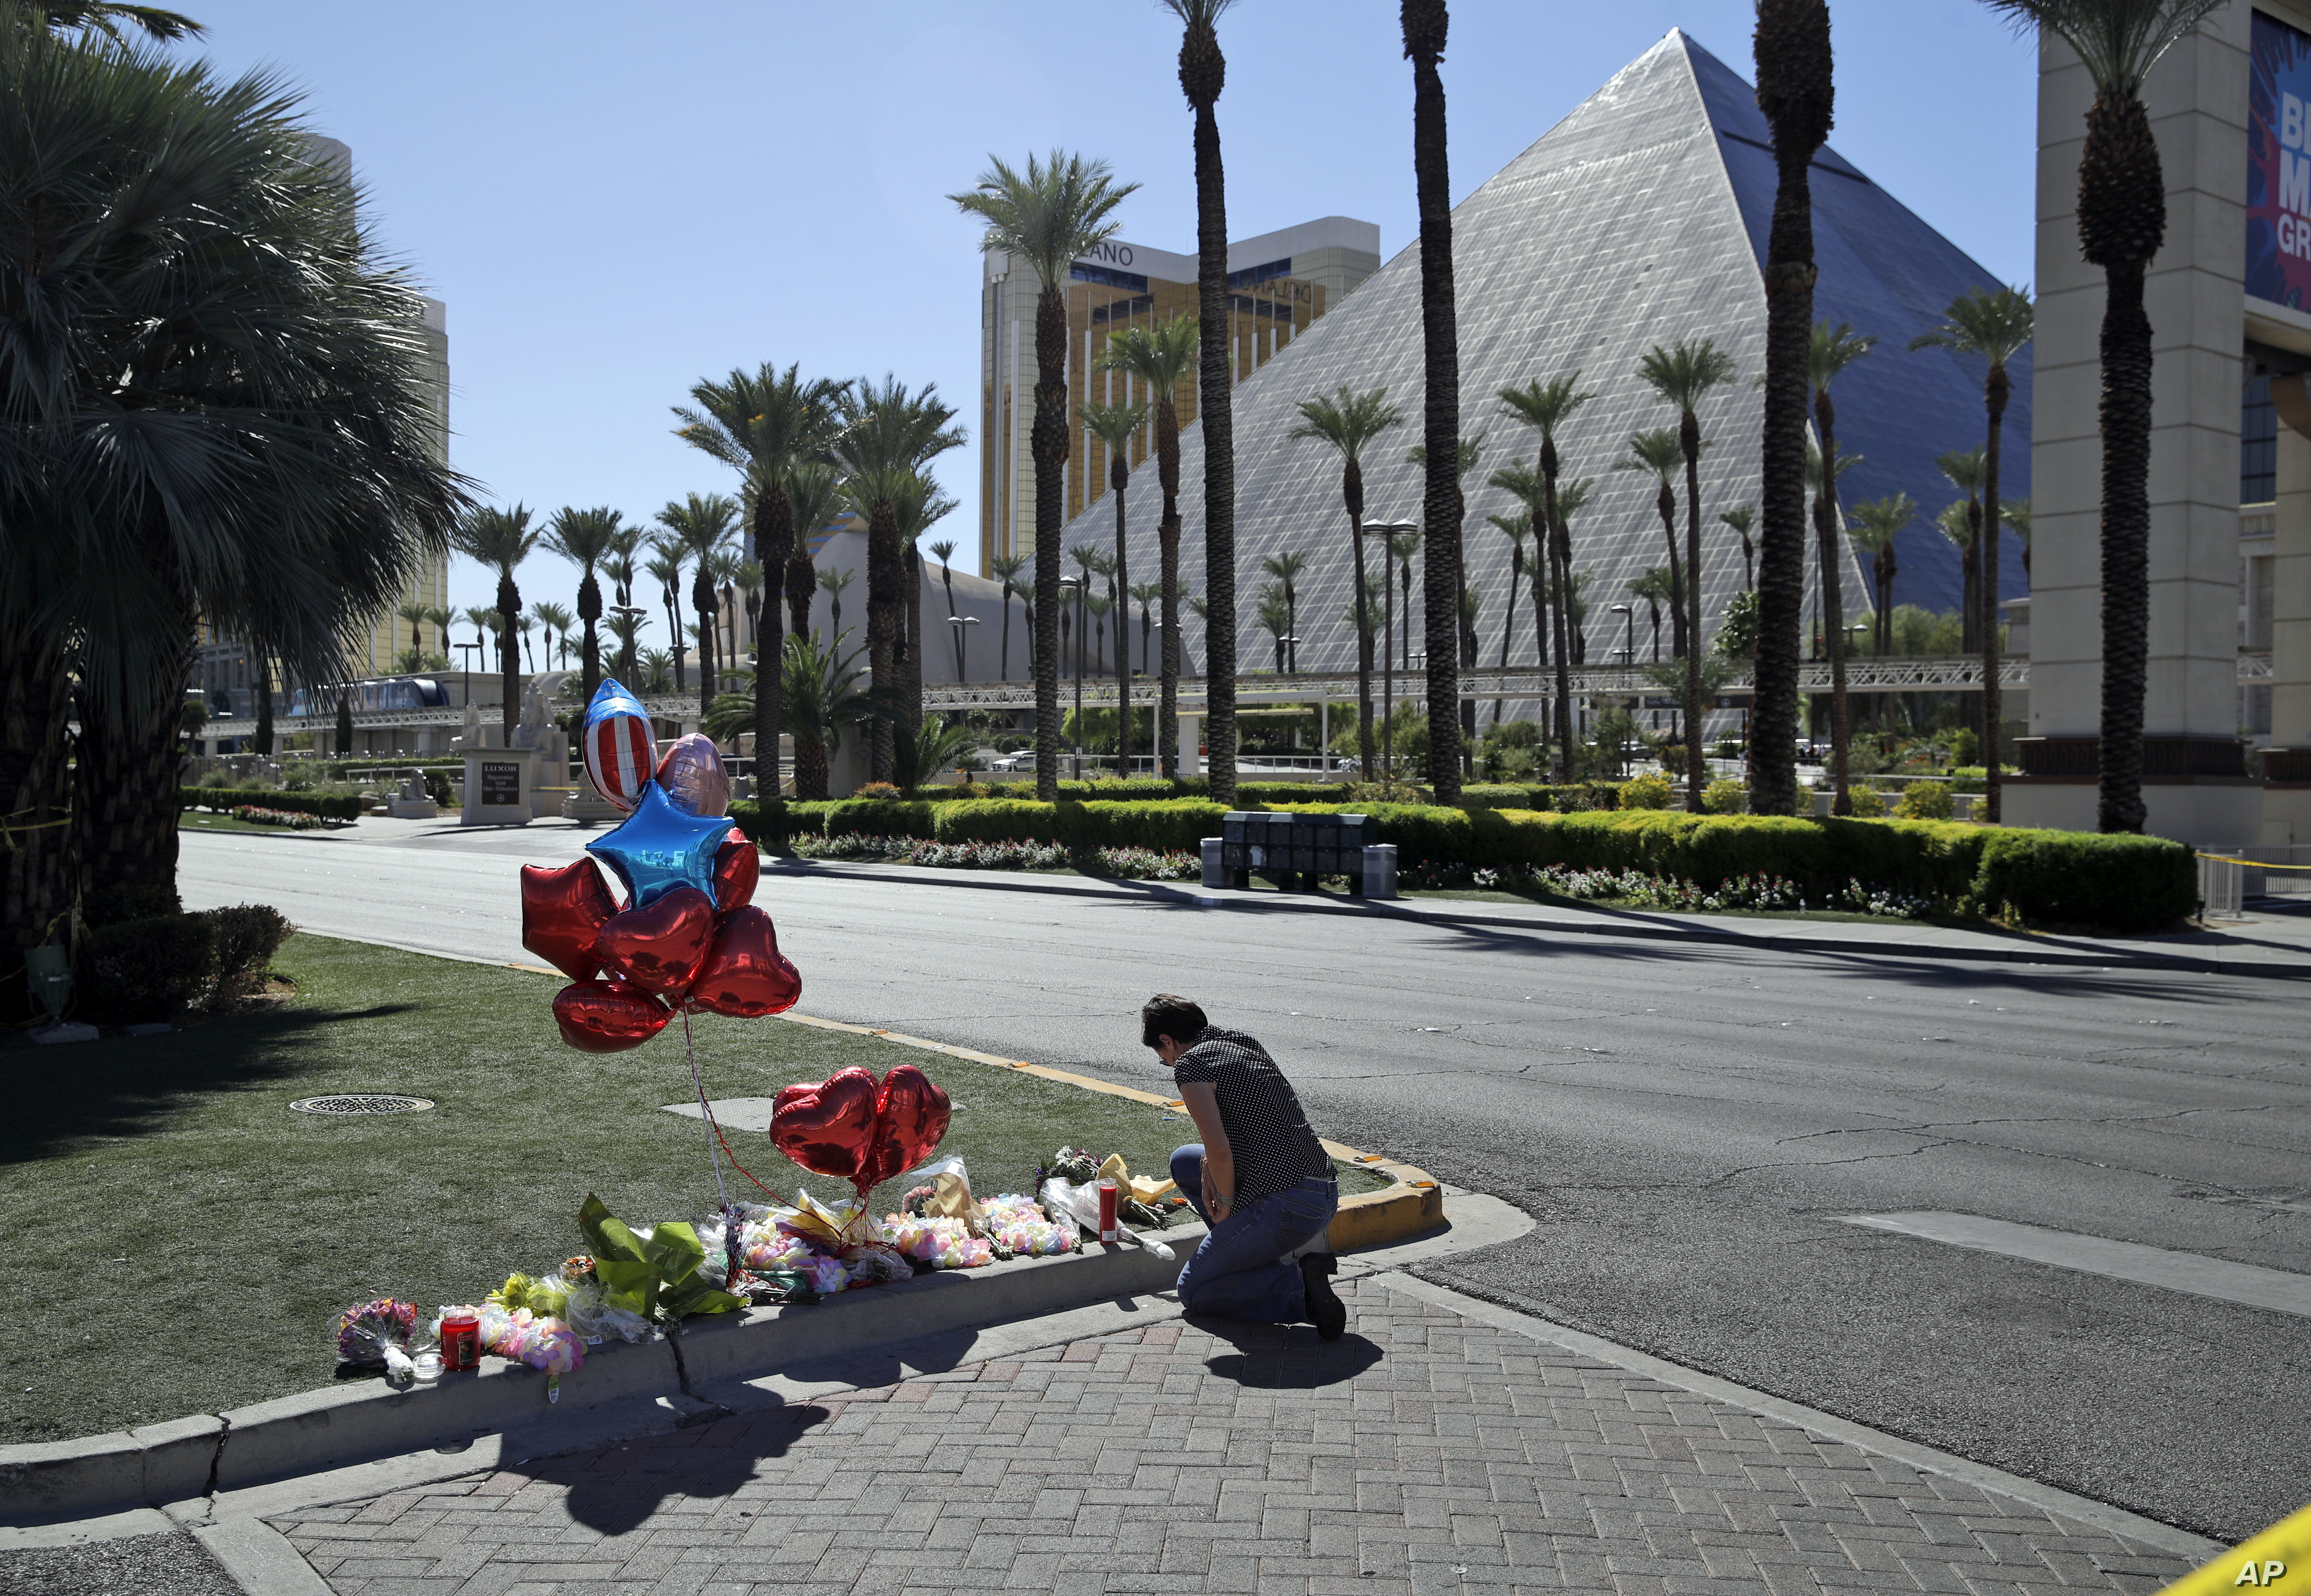 Charlene Ragsdale pauses at a memorial in Las Vegas, Oct. 3, 2017, for those killed Oct. 1 when a gunman opened fire on an outdoor music concert.